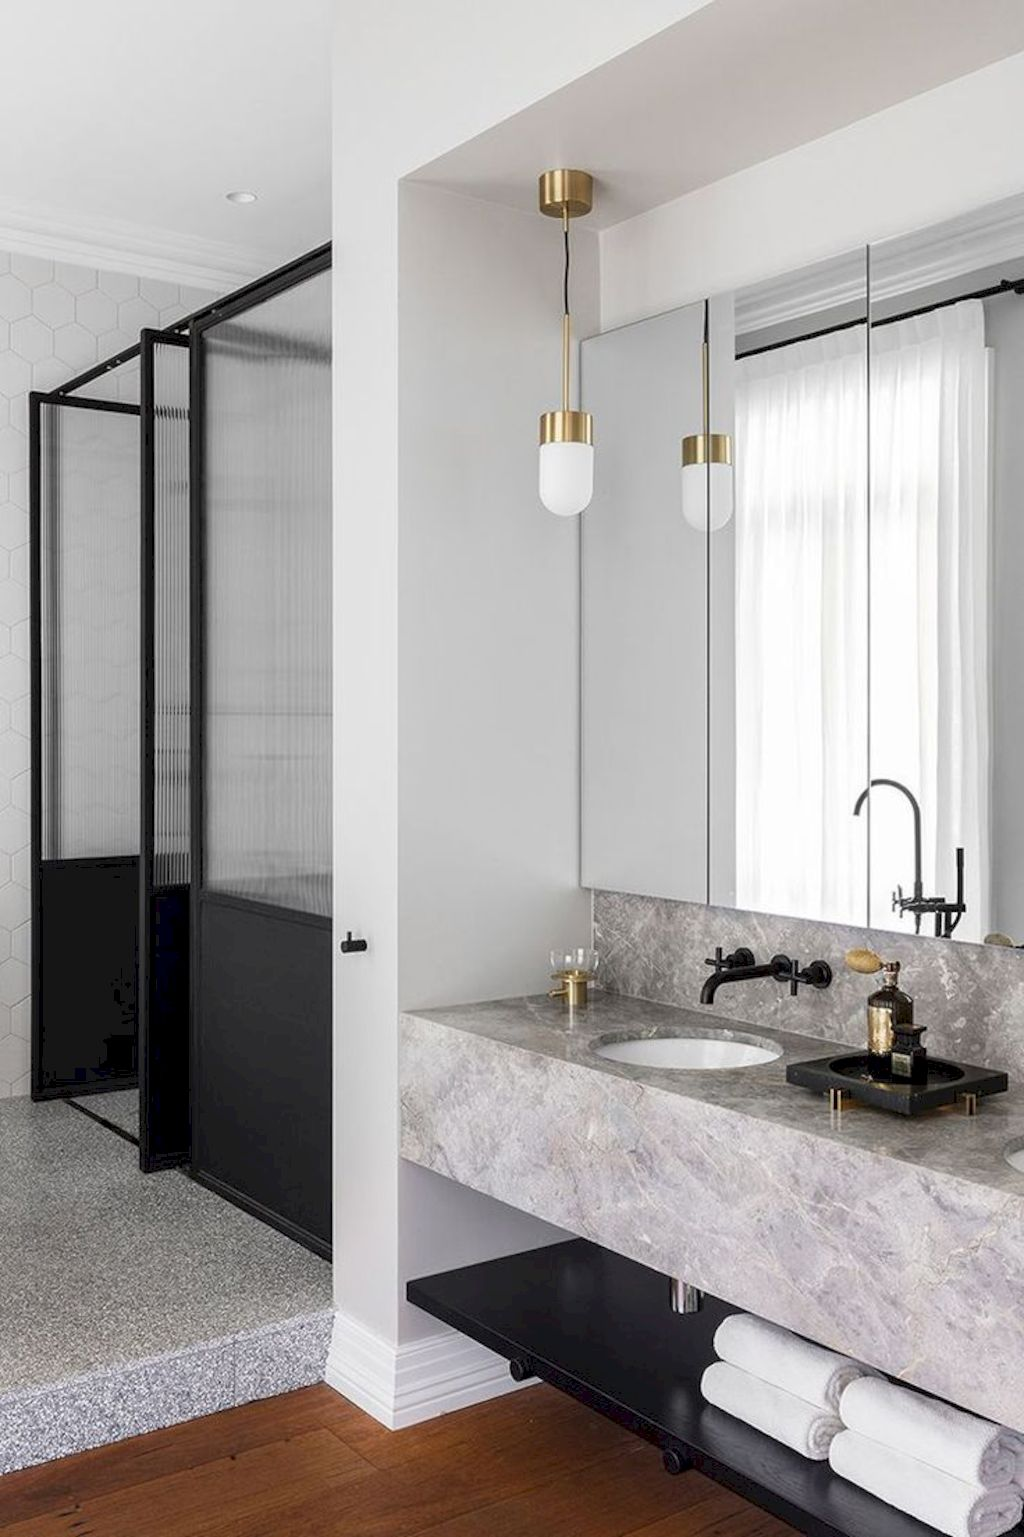 Terrazzo tiles used in bathroom renovation showing classical comeback that bring an artistic retro statement in your home Image 33